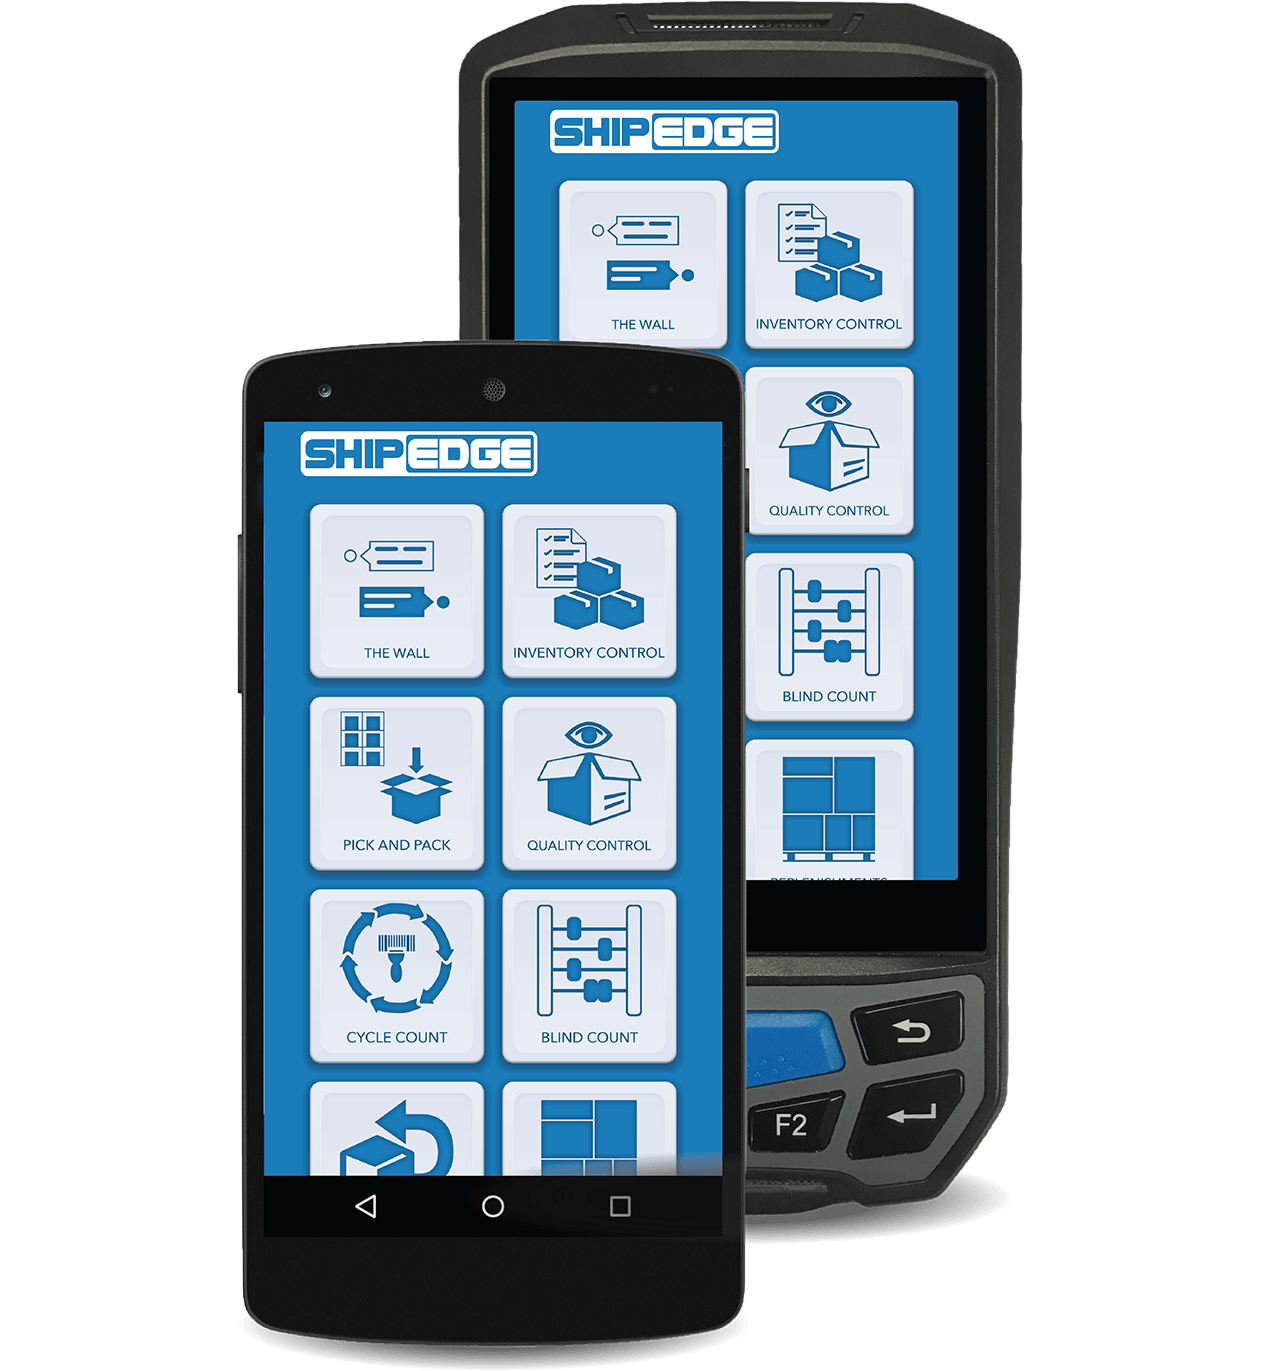 Mobile Barcode Scanner with Shipedge - Shipedge